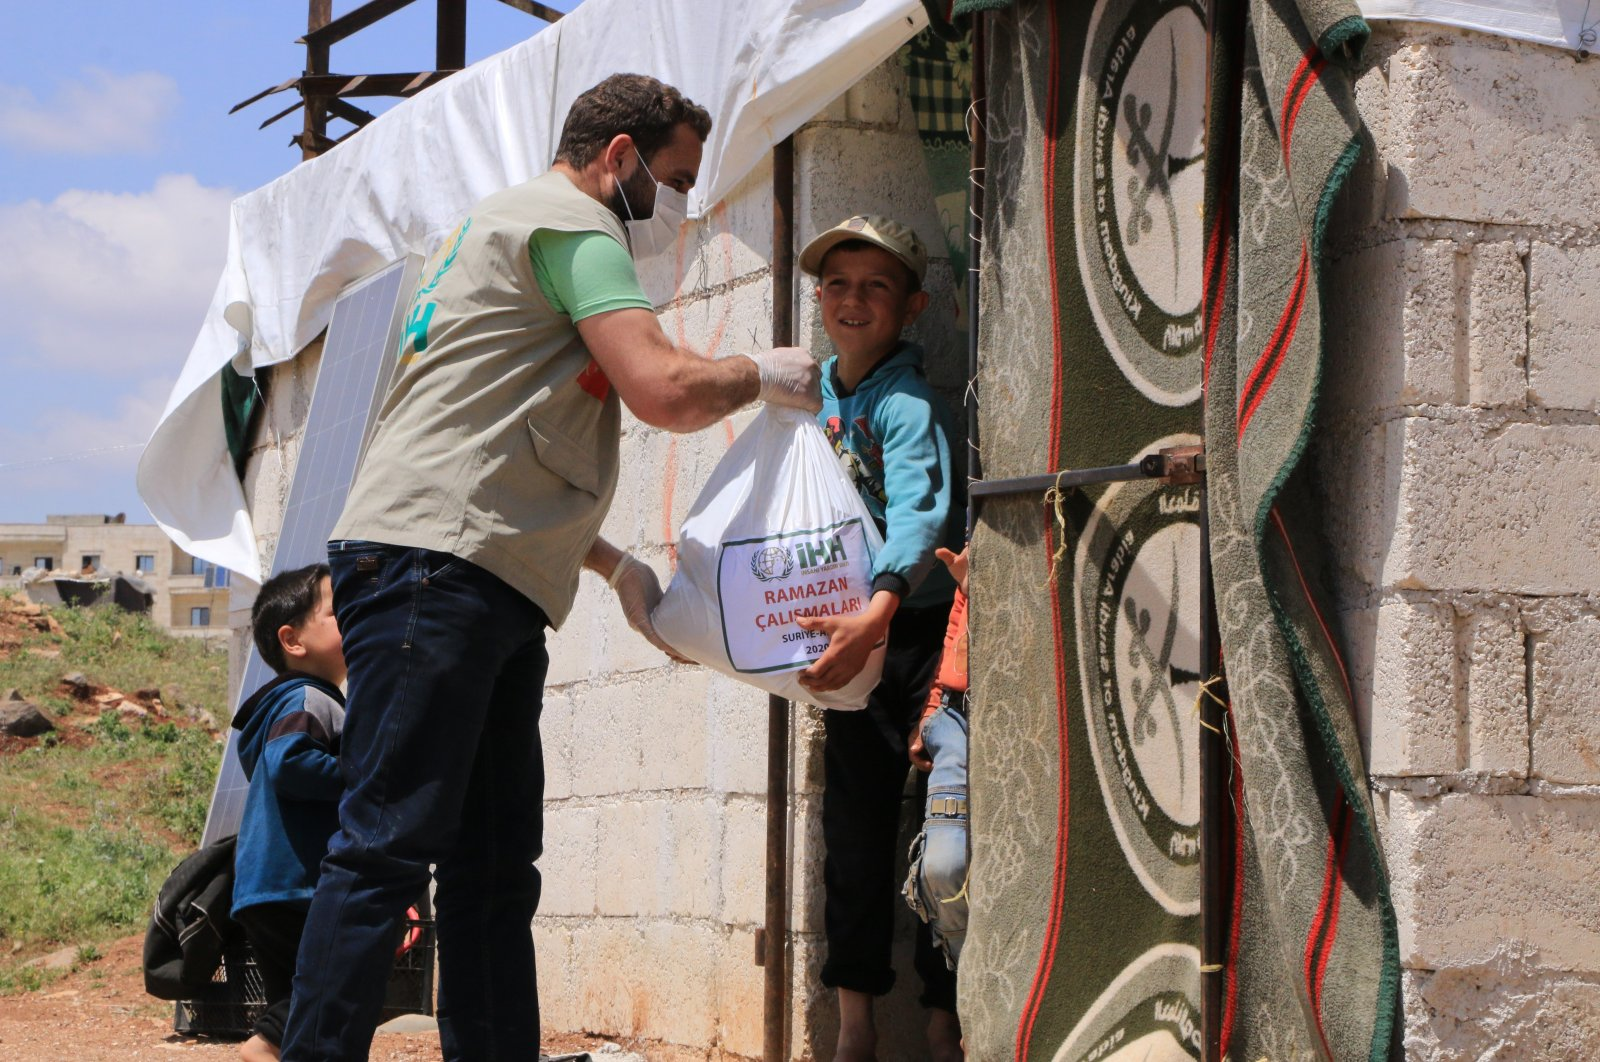 A İHH worker distributes aid to families in northwestern Syria's Afrin, May 12, 2020. (AA Photo)